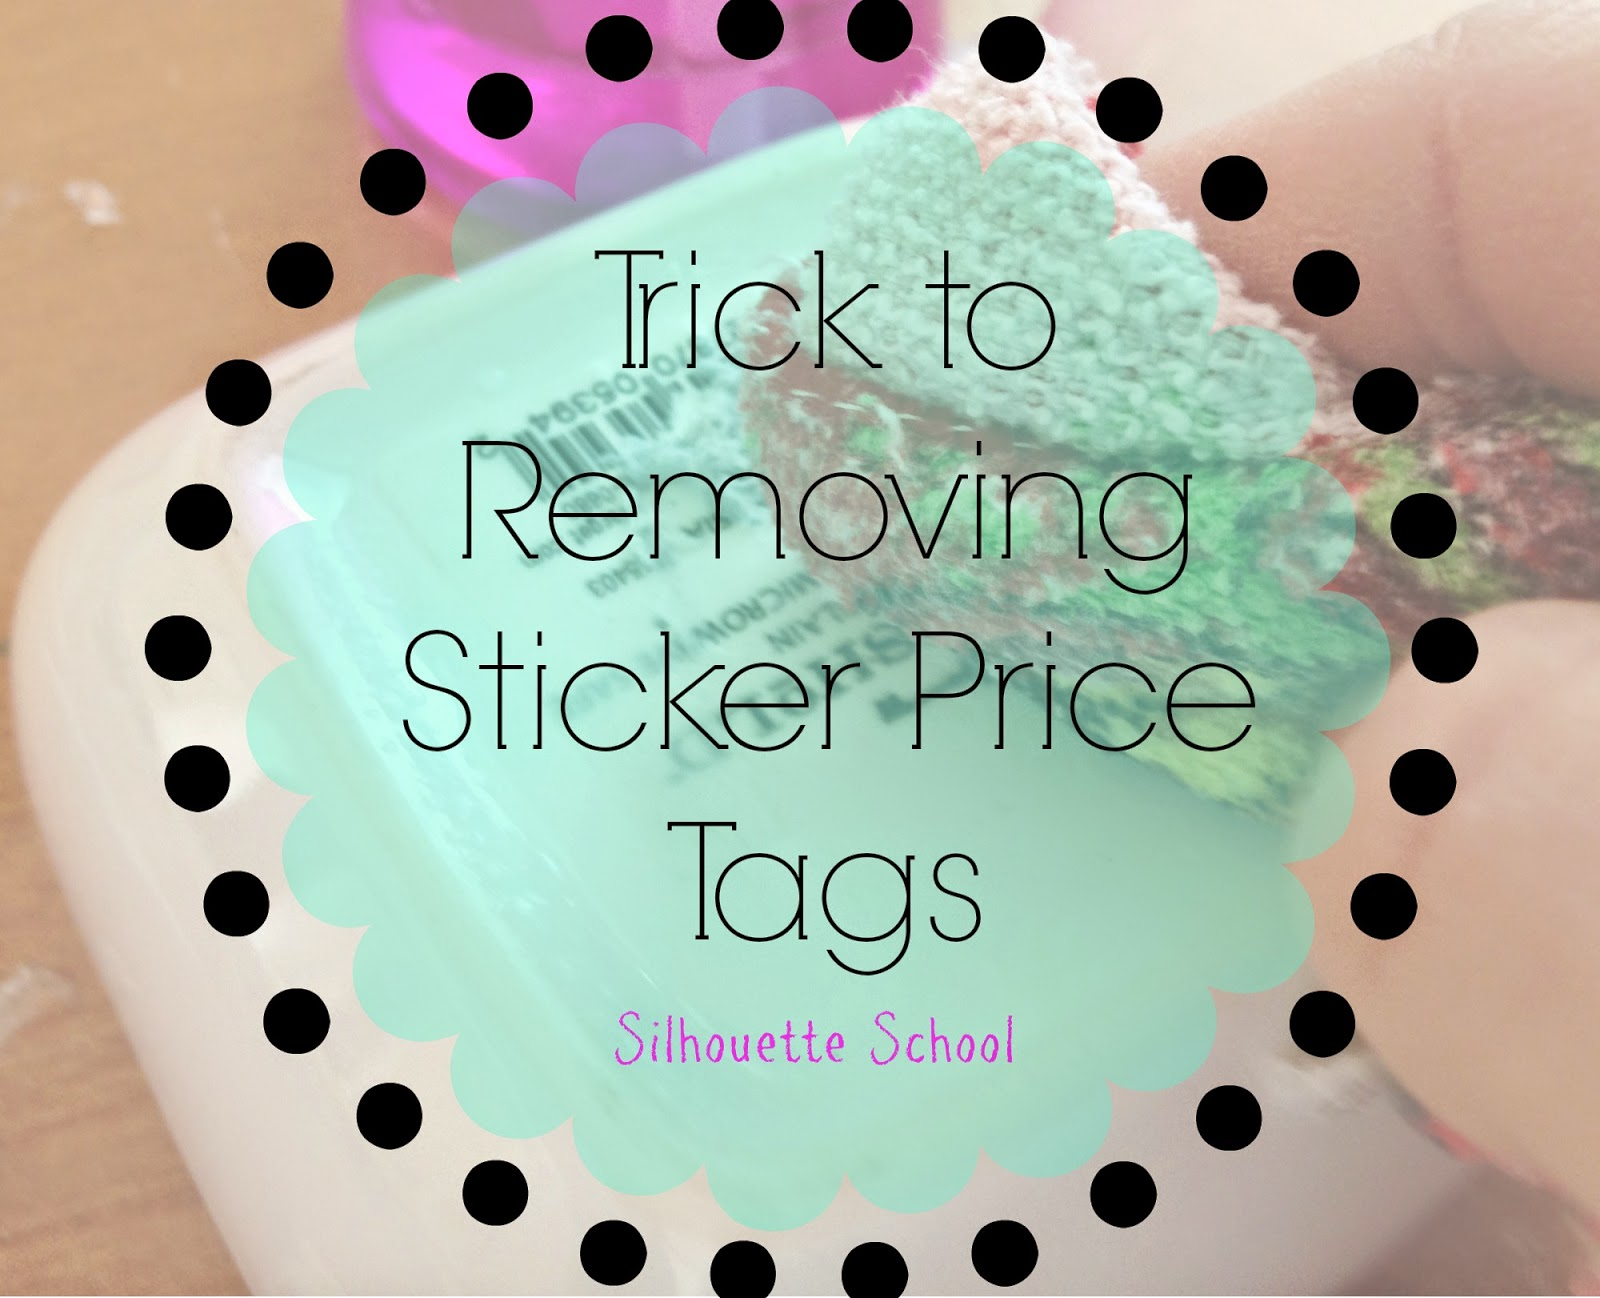 Sticker price tag, removing price tag